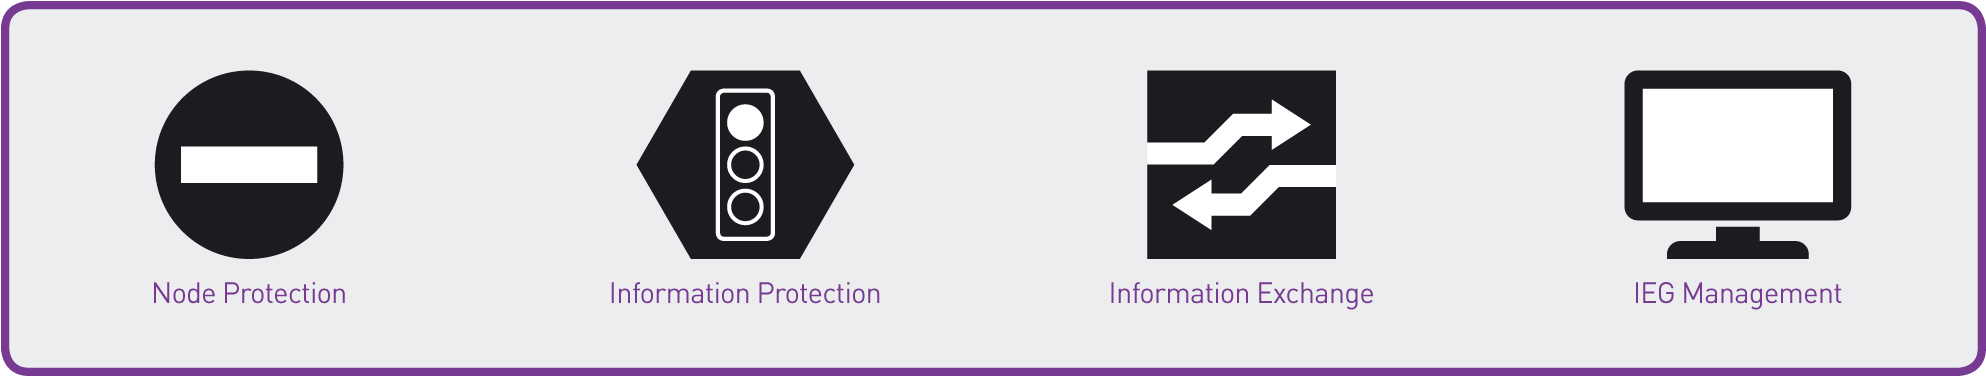 Information Exchange Gateways Reference Architecture icons